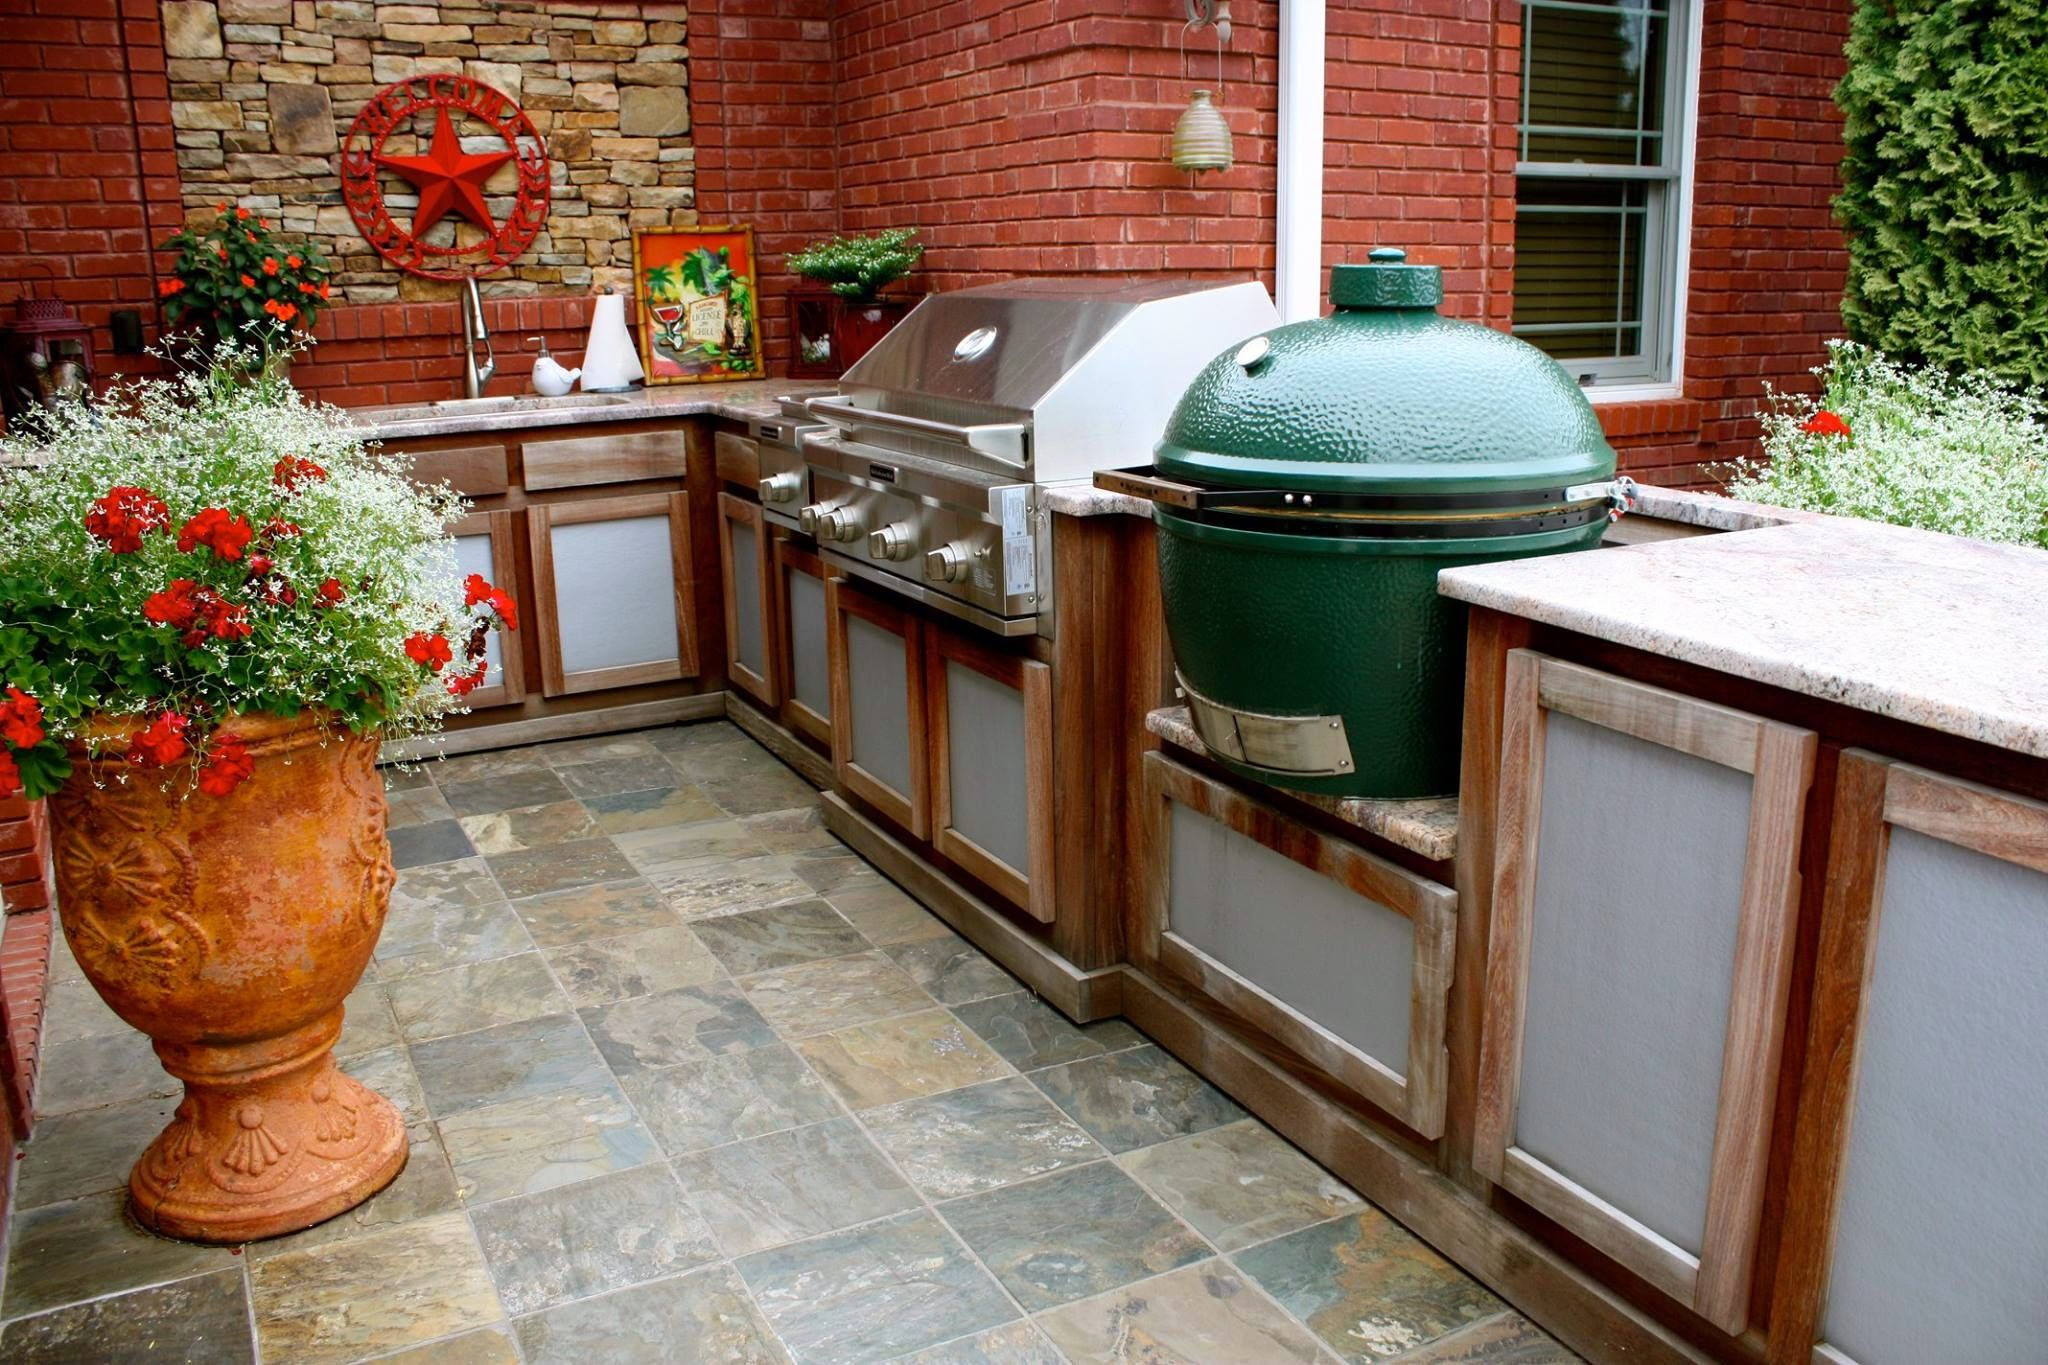 Picture of L Shaped Island with Stainless Grill and Big Green Egg